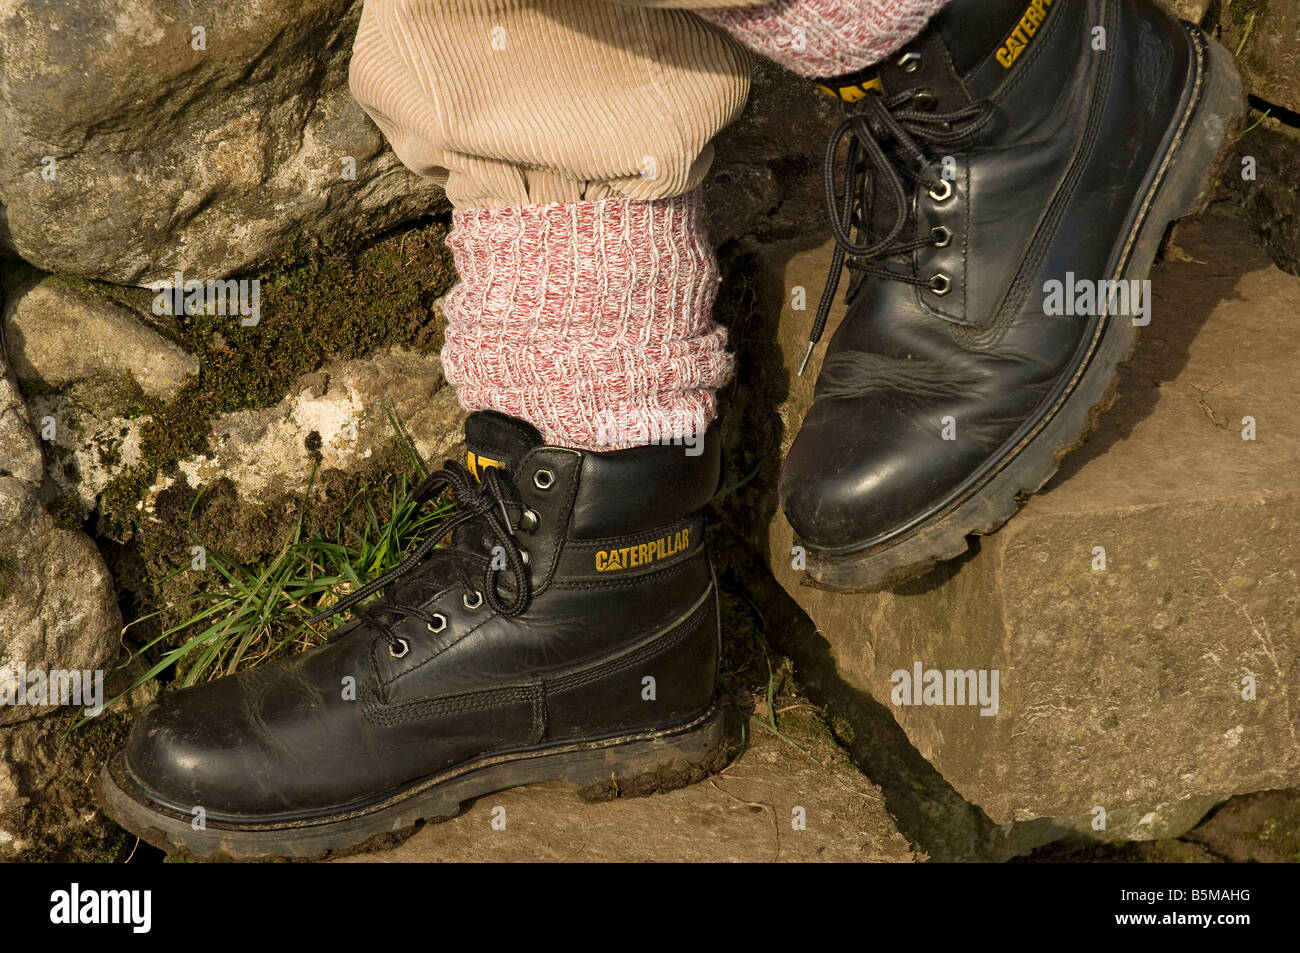 052da8a7c7b Man wearing walking boots England UK United Kingdom GB Great Britain ...